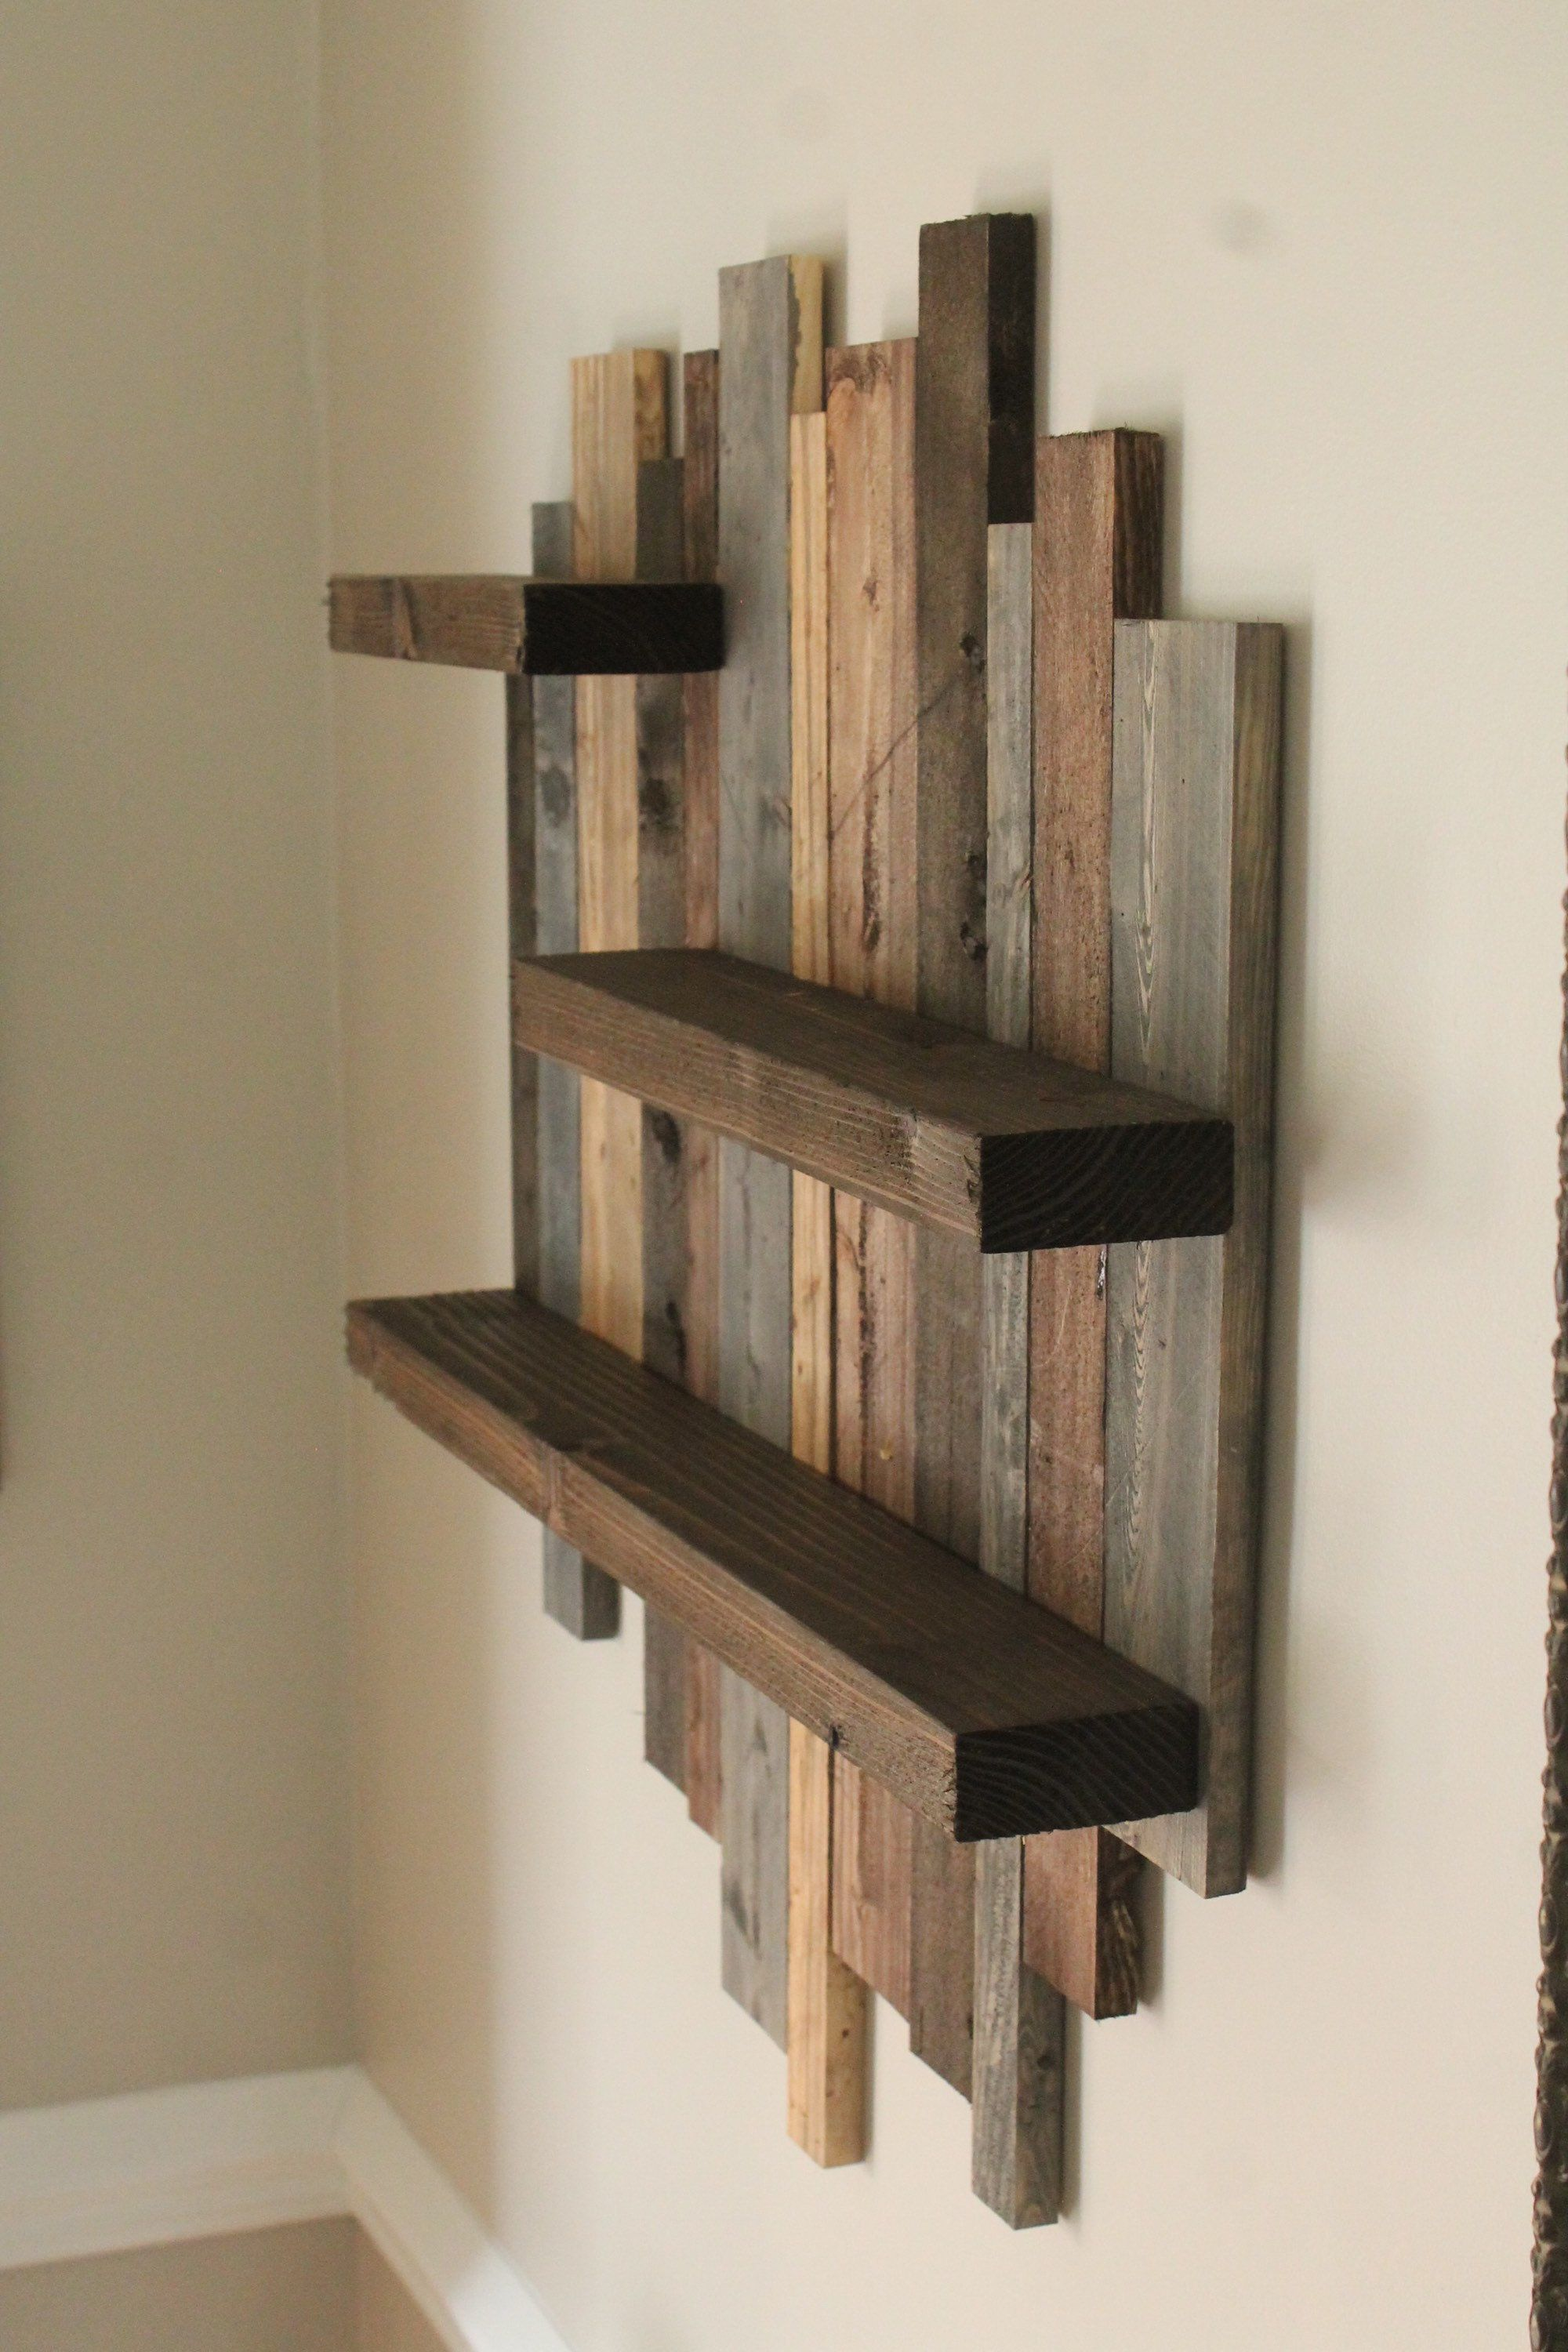 Floating Shelves Unit Rustic Wooden Hanging Decor Rustic Wall